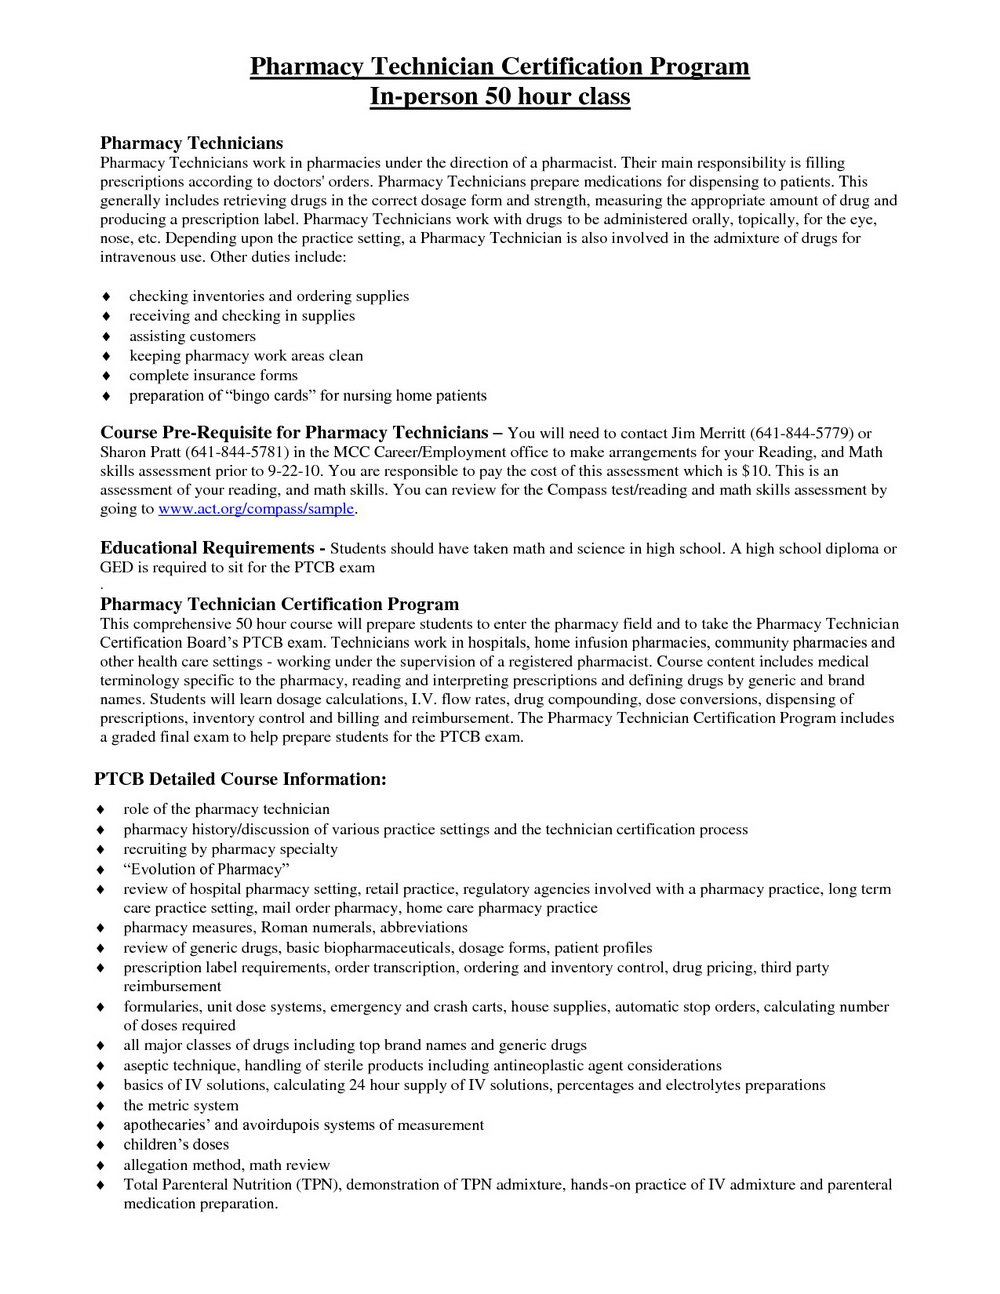 Sample Certified Pharmacy Technician Resume